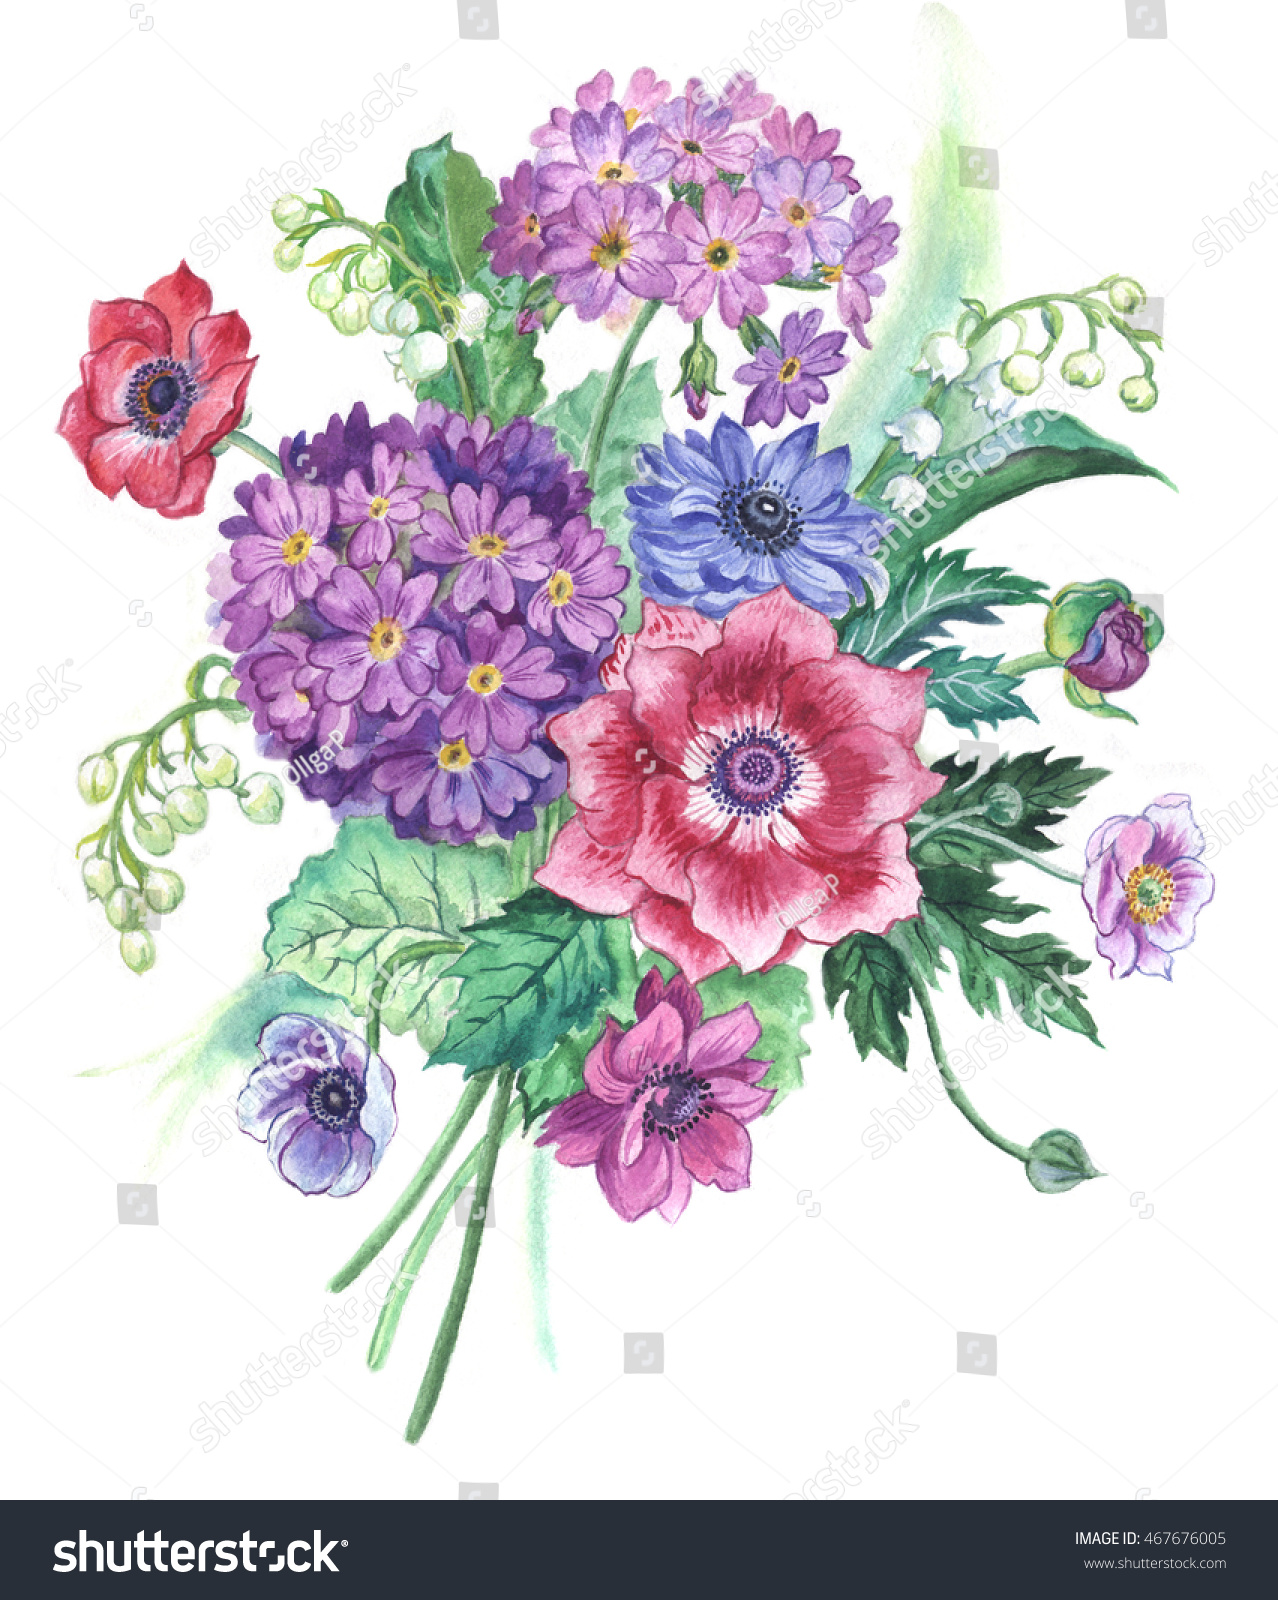 Bouquet spring flowers watercolor painting stock for Spring flowers watercolor